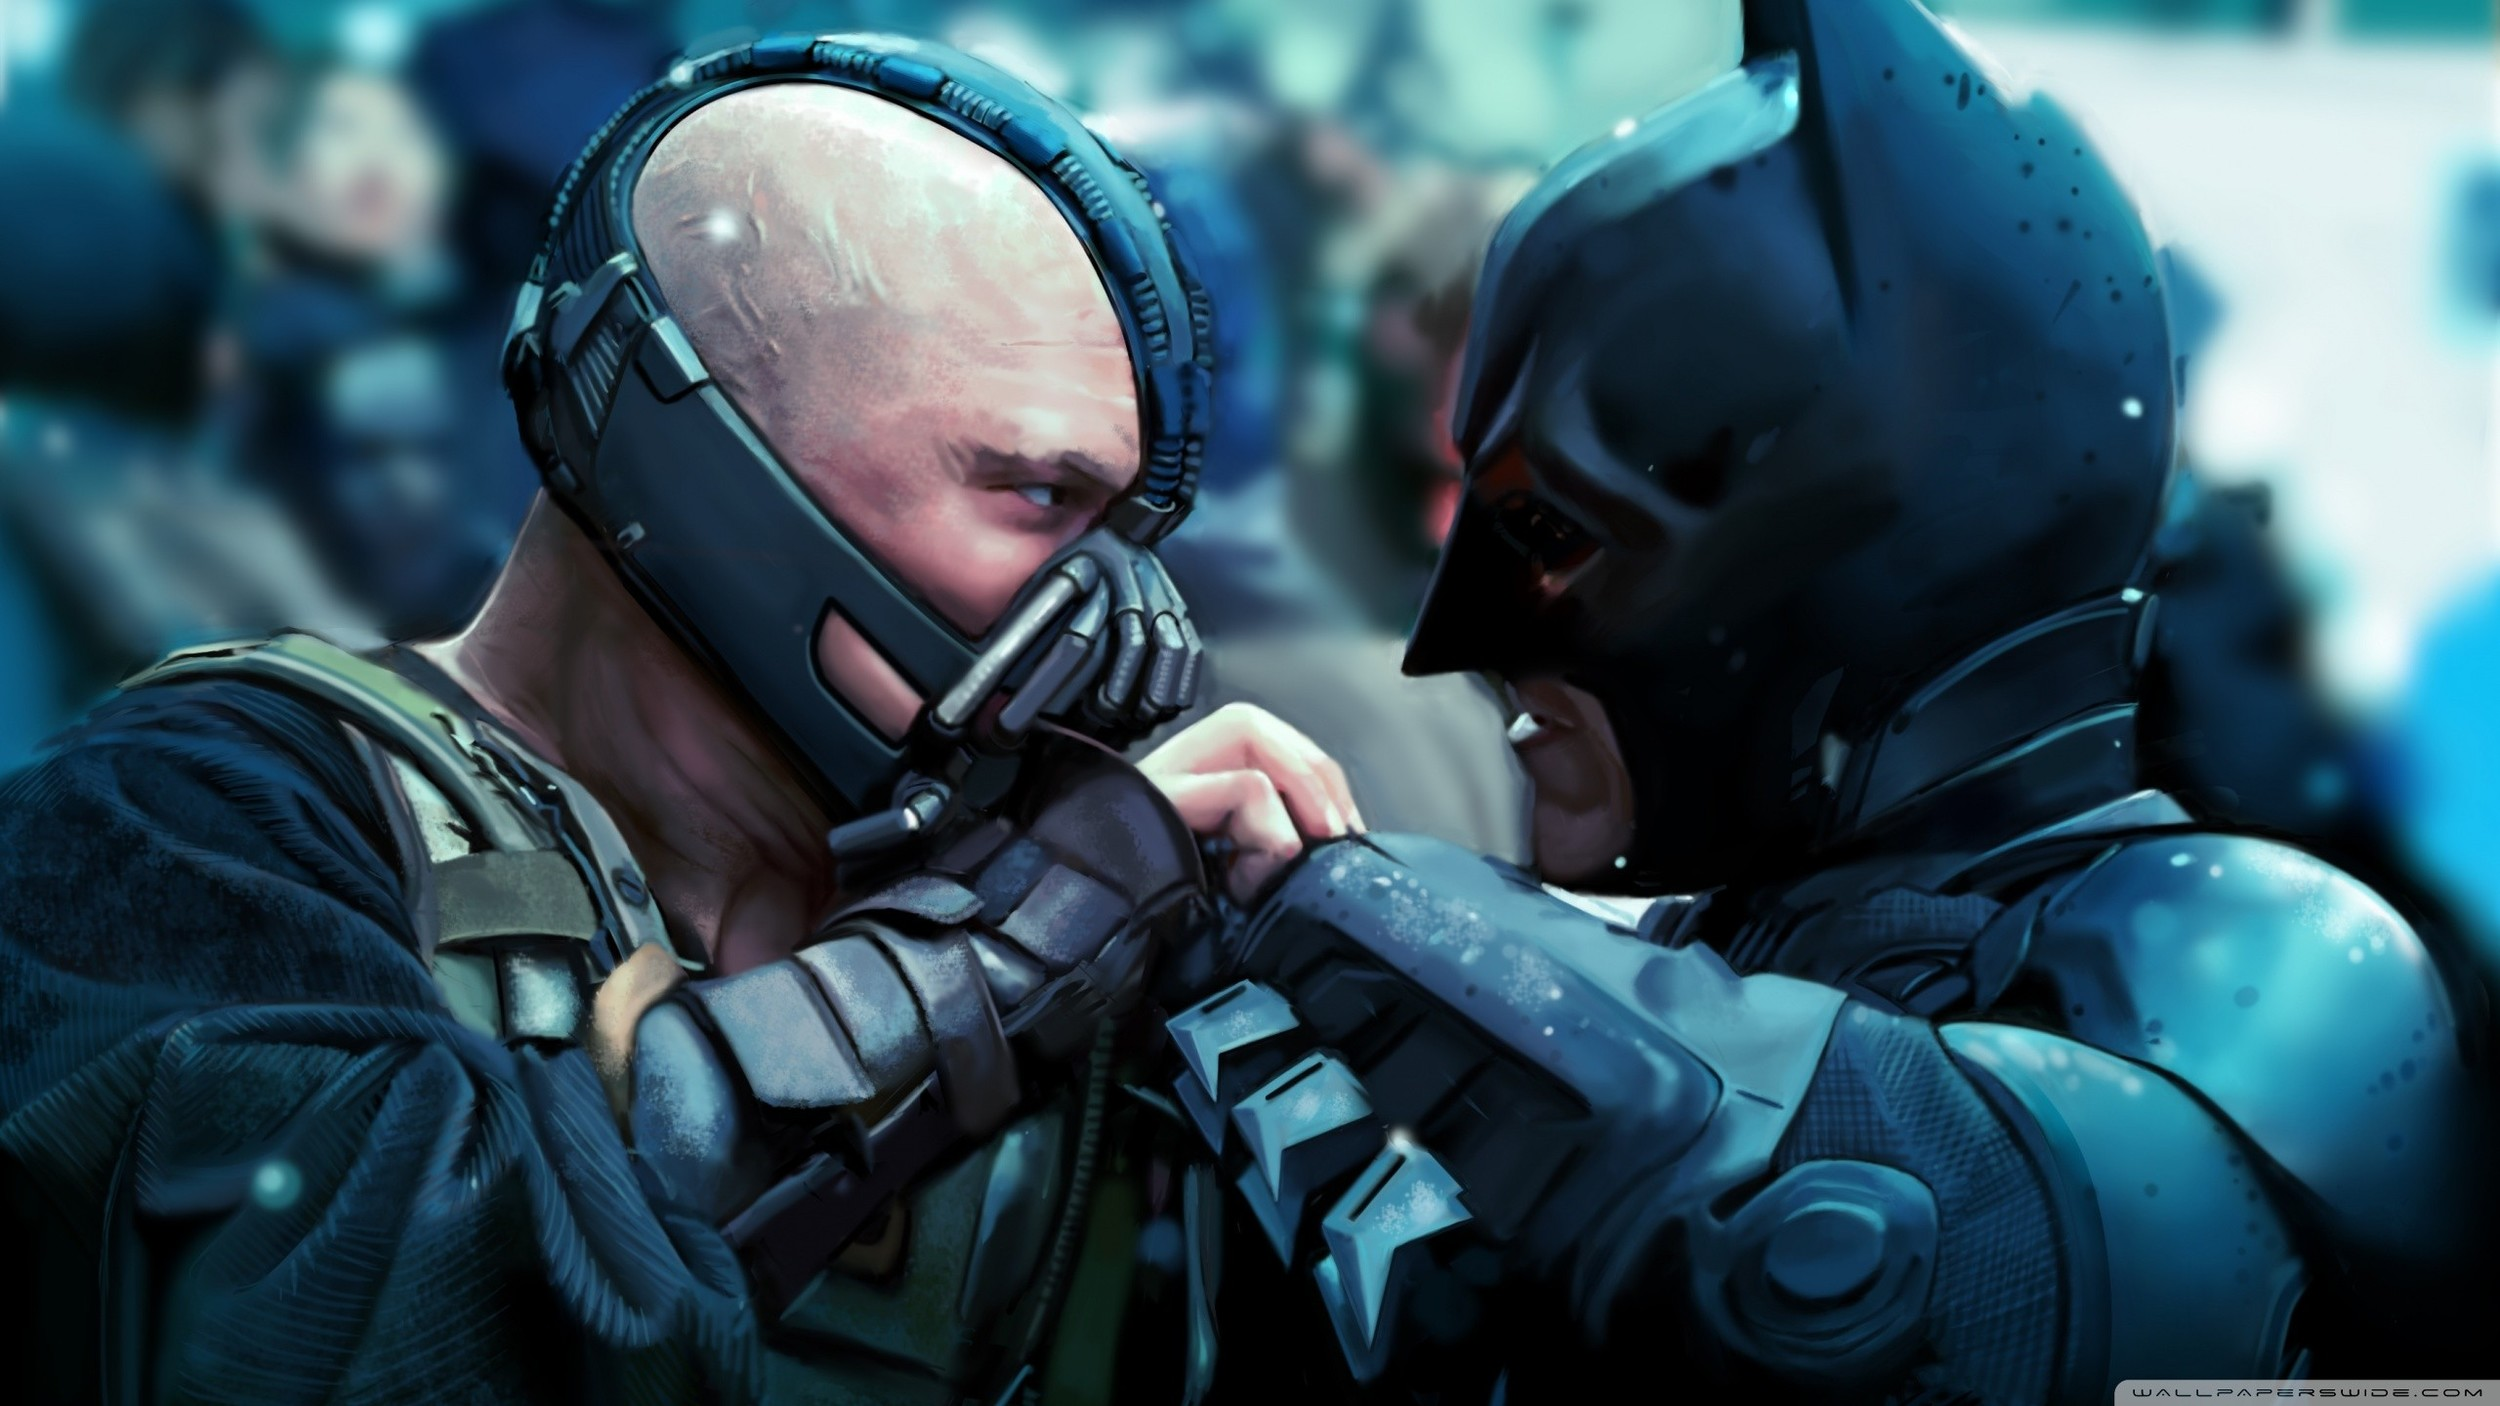 batman-bane-batman-the-dark-knight-rises-260515